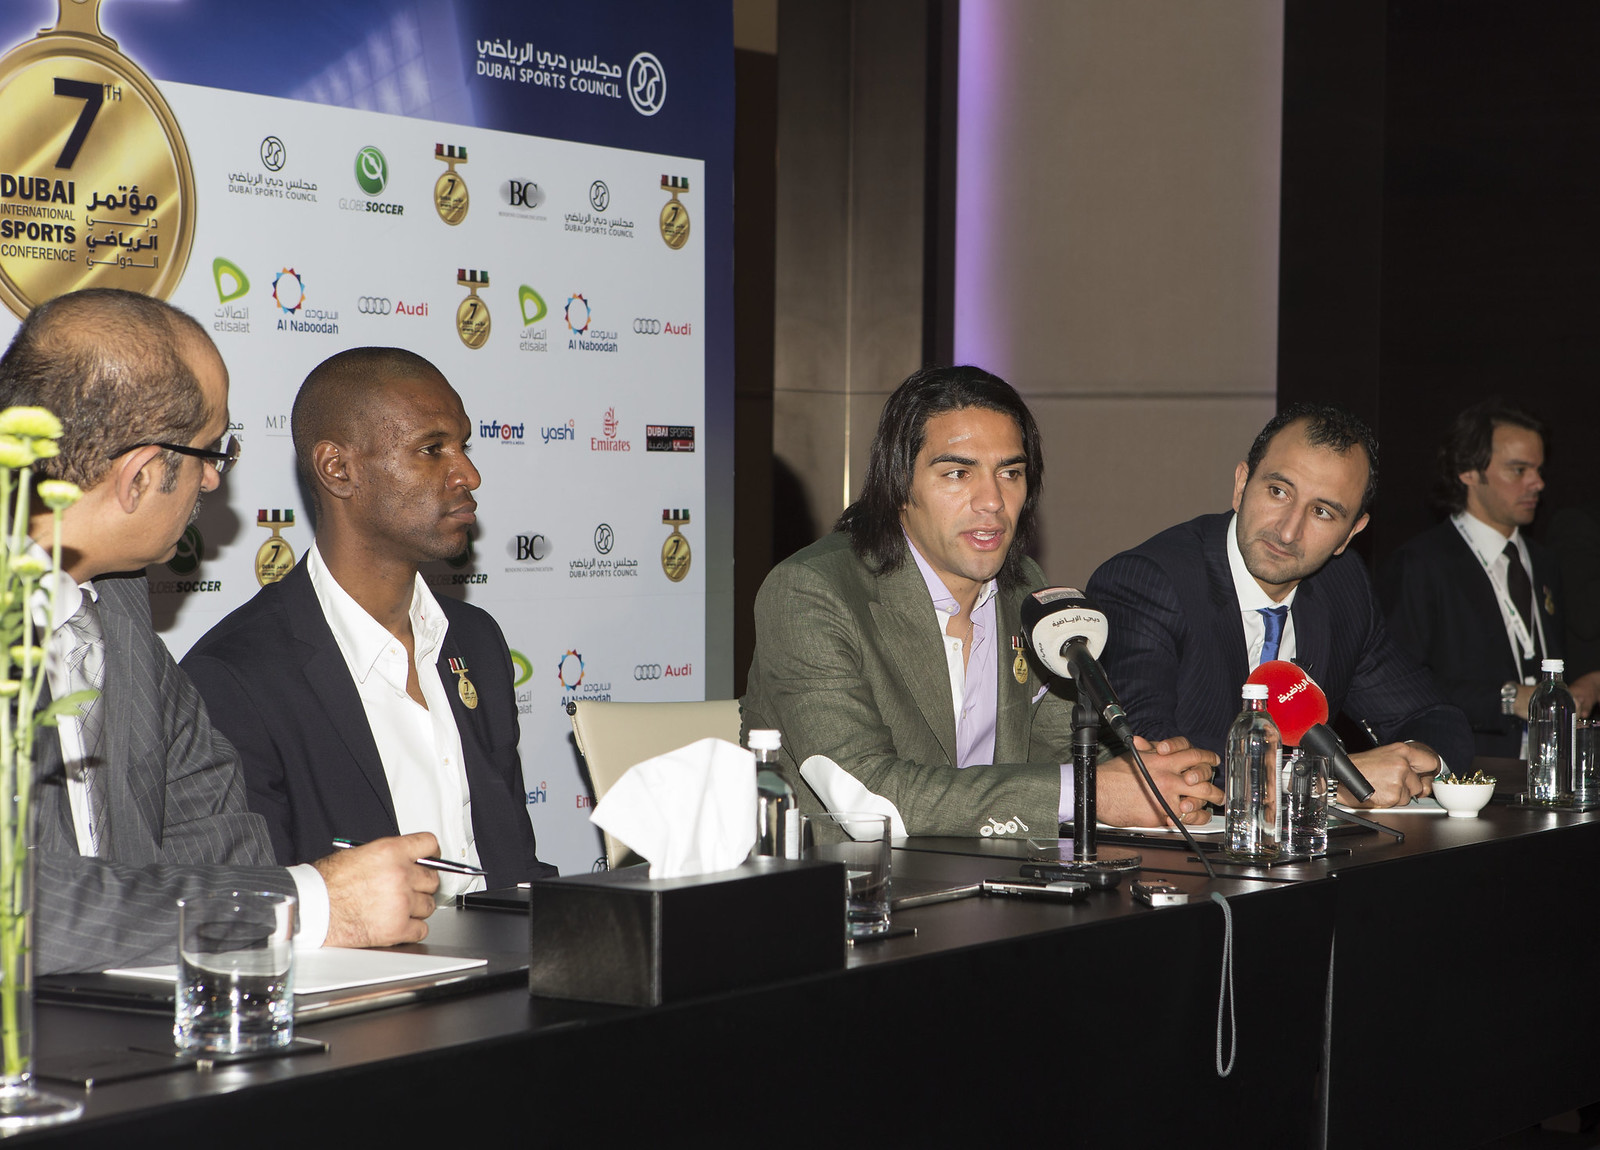 Globe Soccer Press Conference